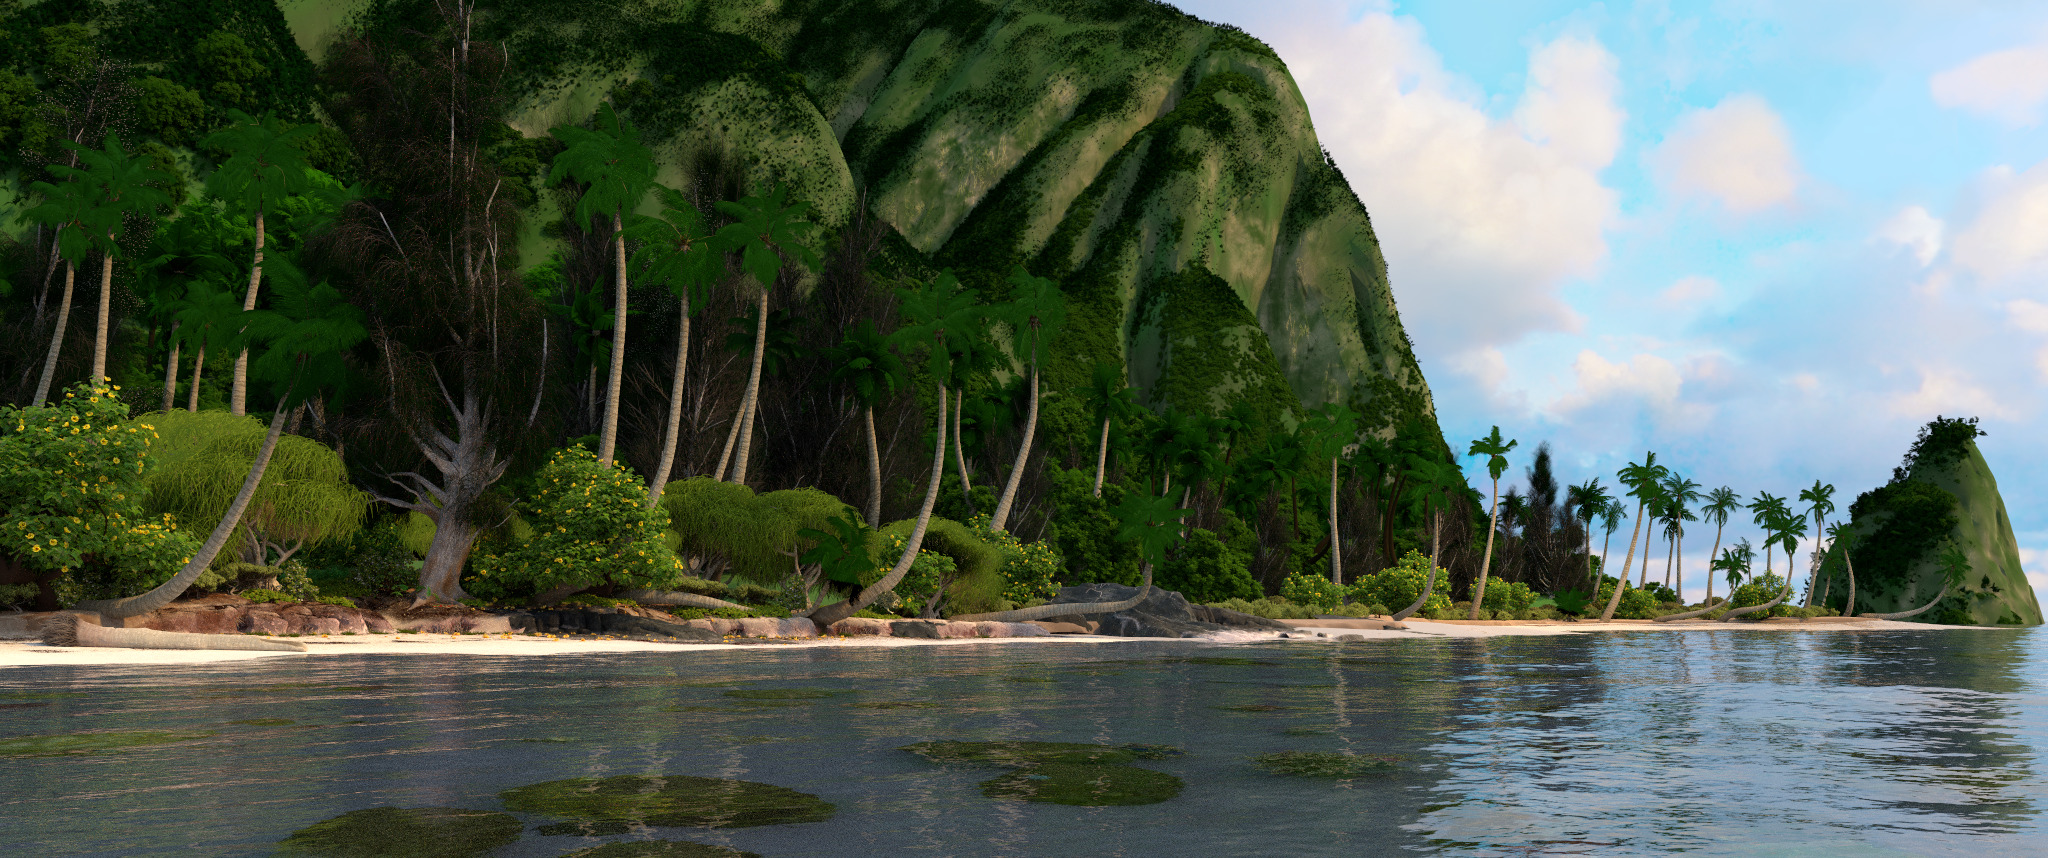 "Optimize the rendering of the scene from the Disney cartoon ""Moana"". Part 1"